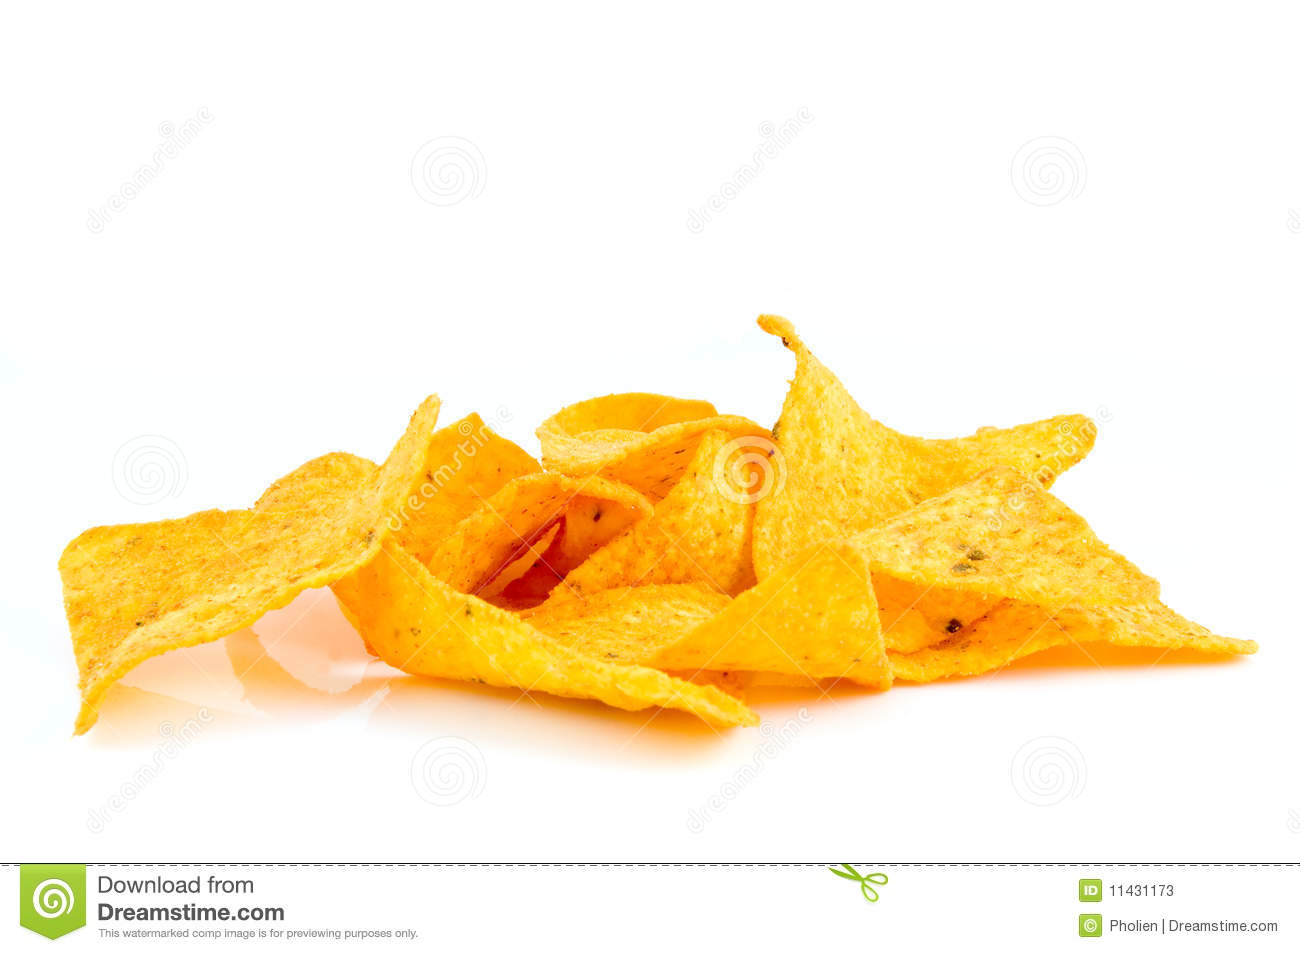 Mr. Chips No More